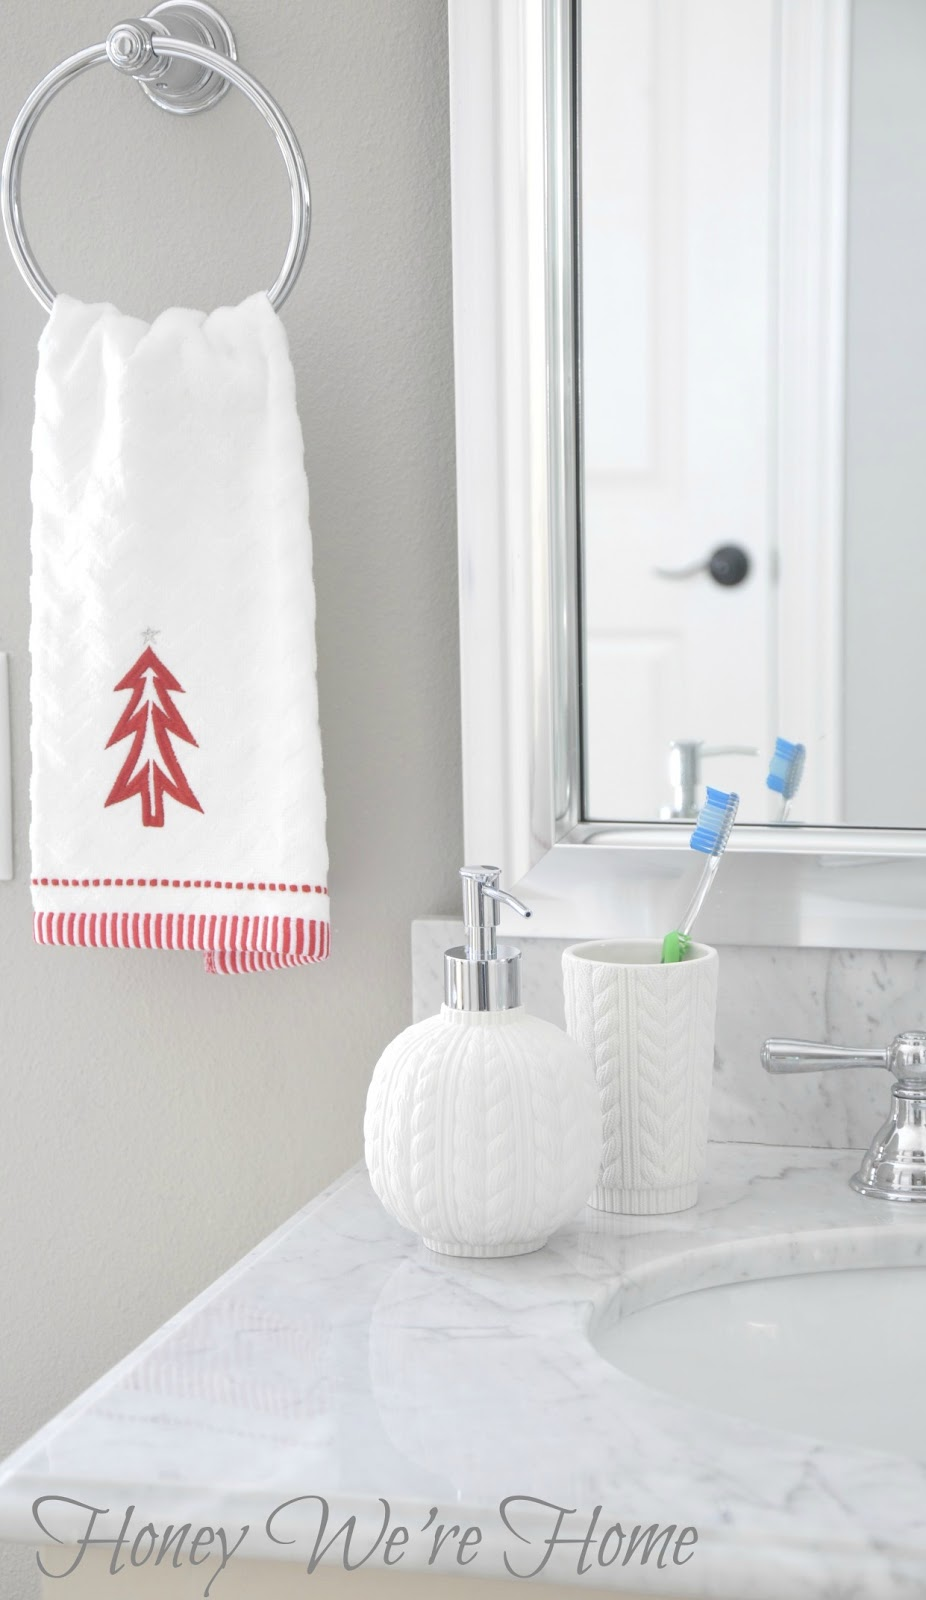 Target Holiday Accessories in the Bathroom  Honey Were Home